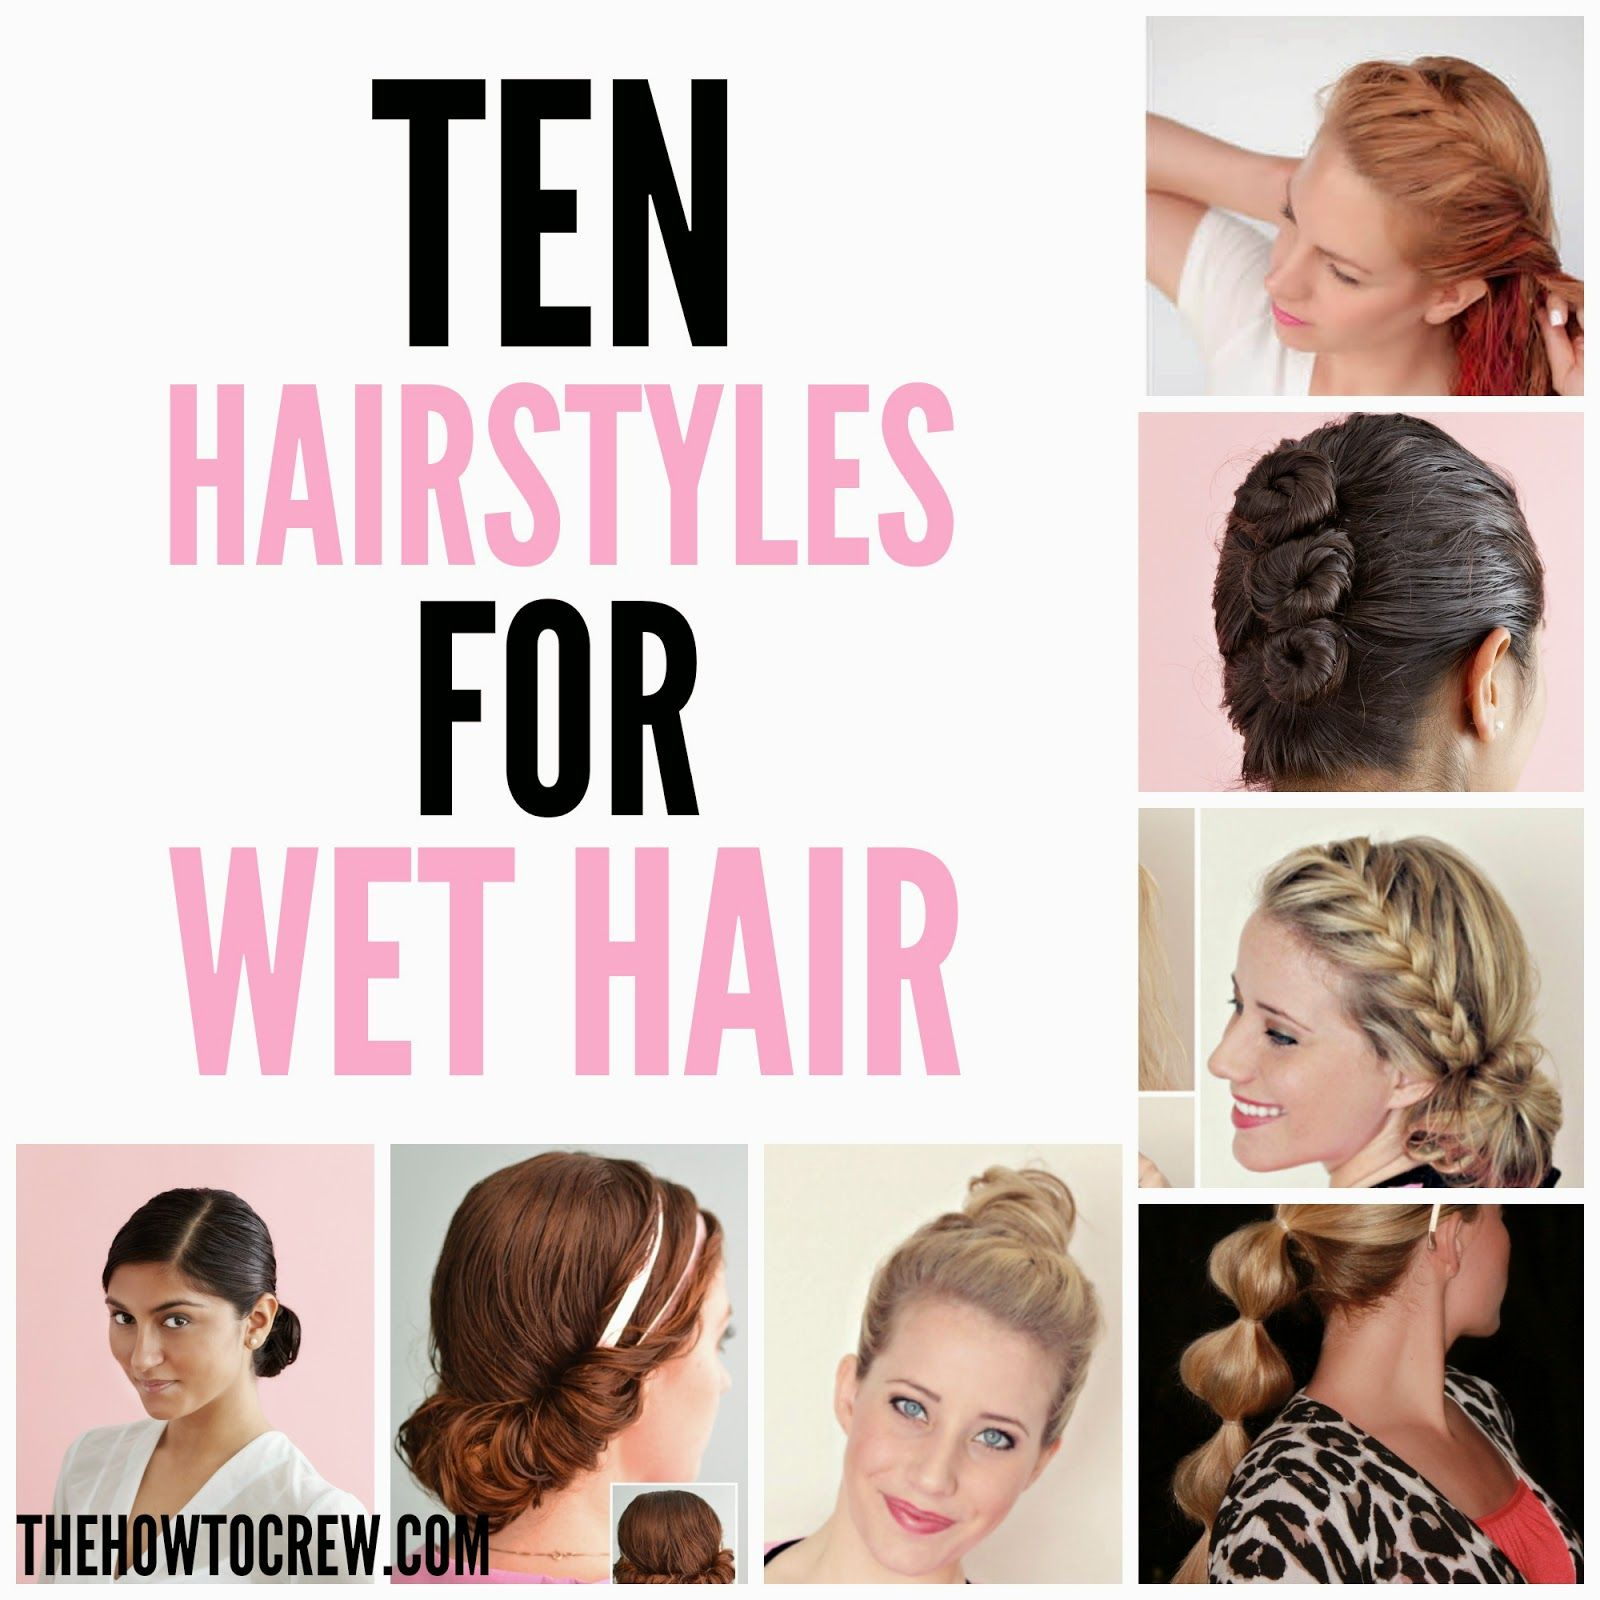 Ten Hairstyles For Wet Hair On Thehowtocrew Com Hair Hair Styles